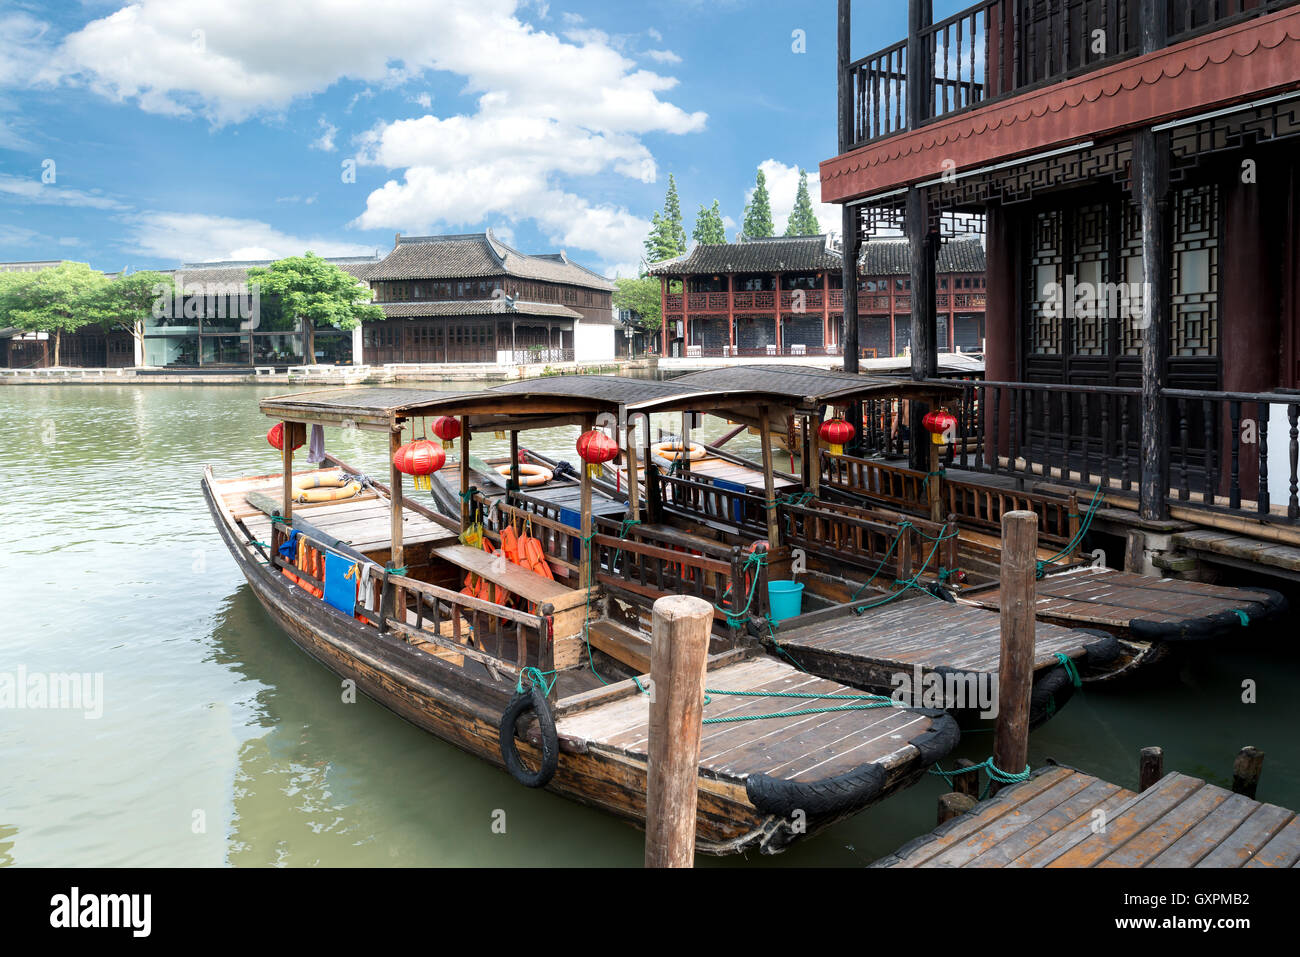 China traditional tourist boats on canals of Shanghai Zhujiajiao Water Town in Shanghai, China - Stock Image